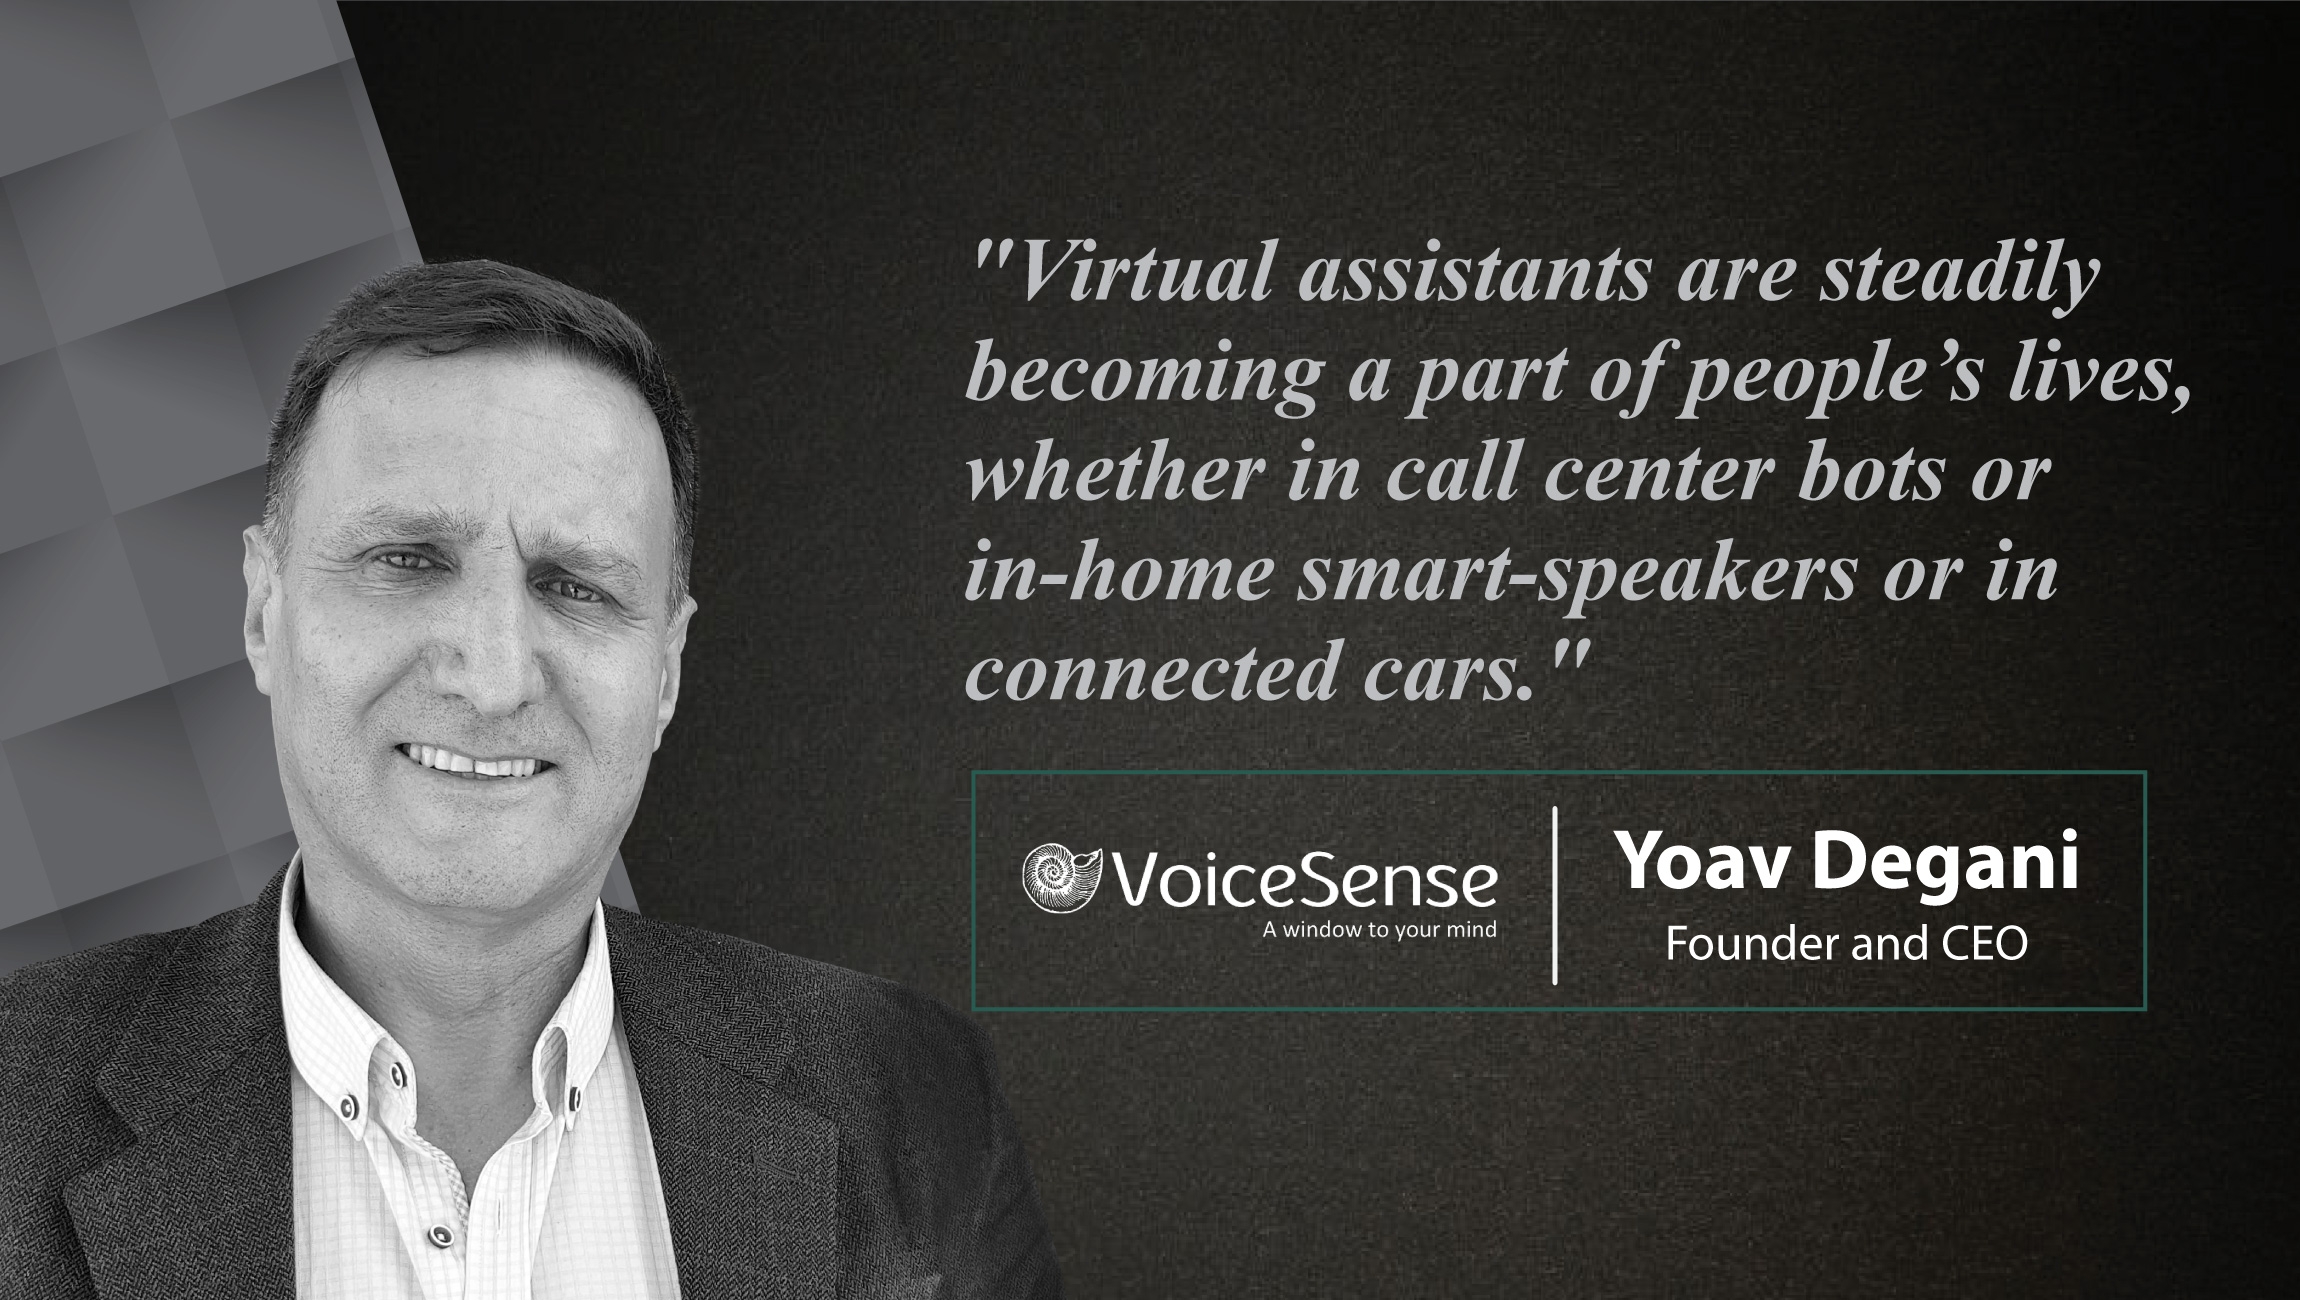 Interview with Yoav Degani, Founder and CEO, VoiceSense_cue card